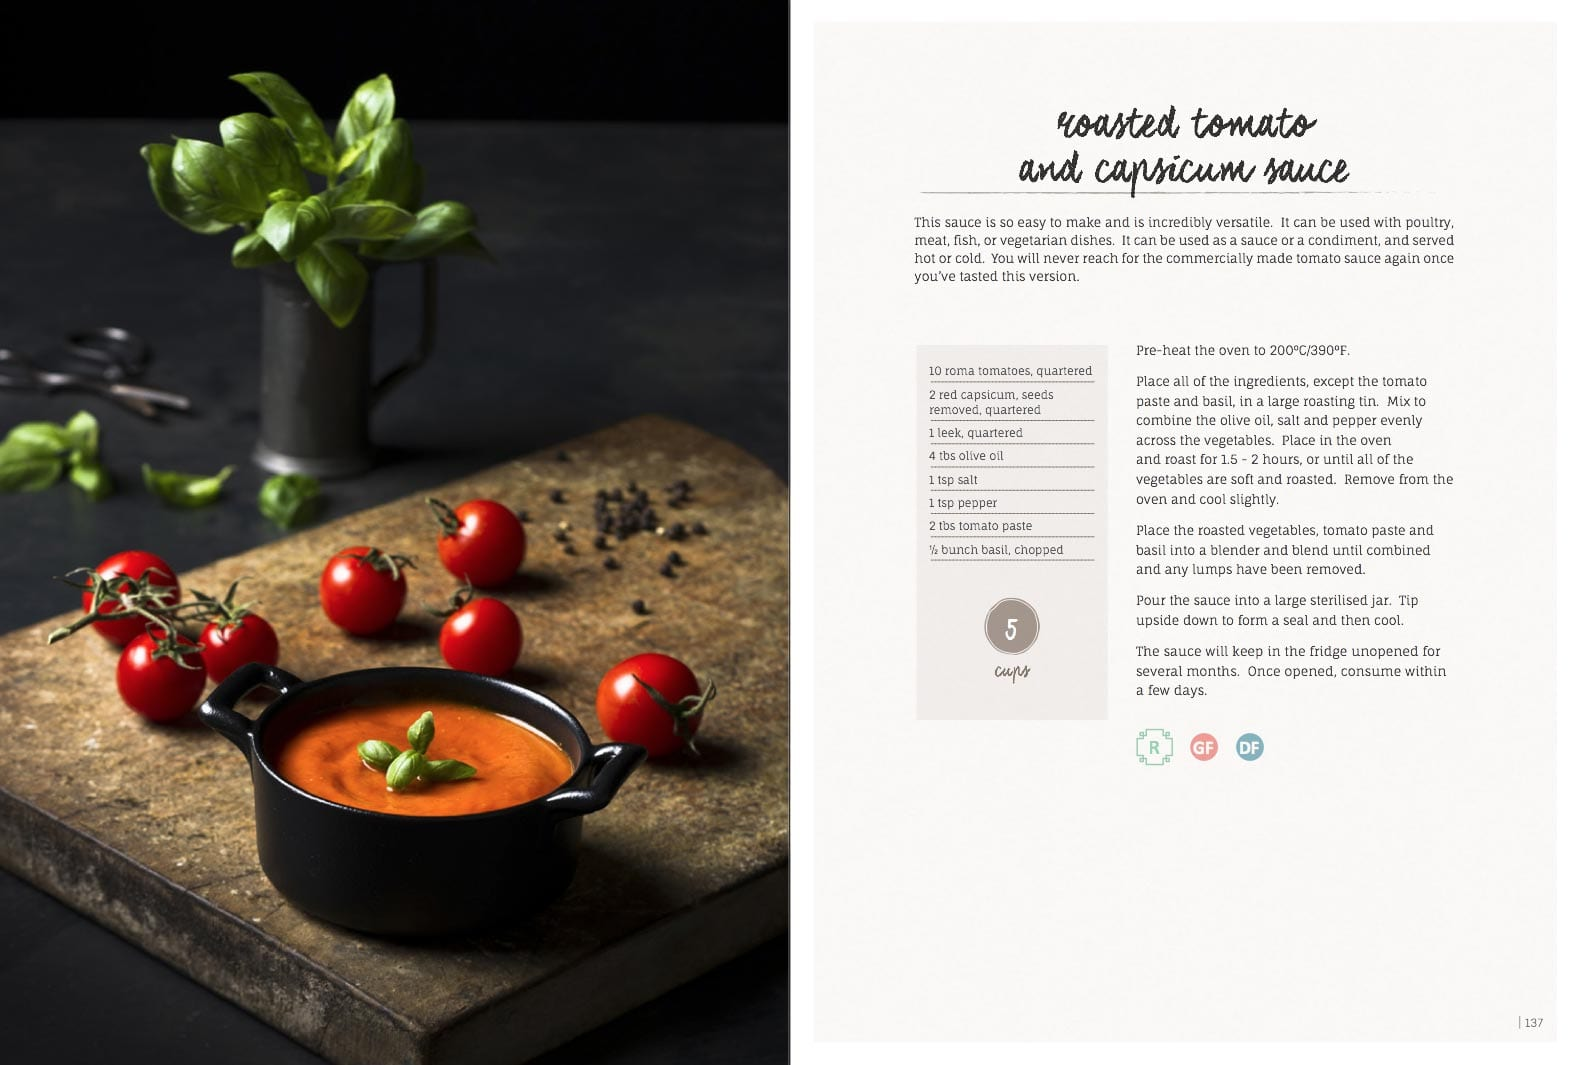 Roasted Tomato And Capsicum Sauce